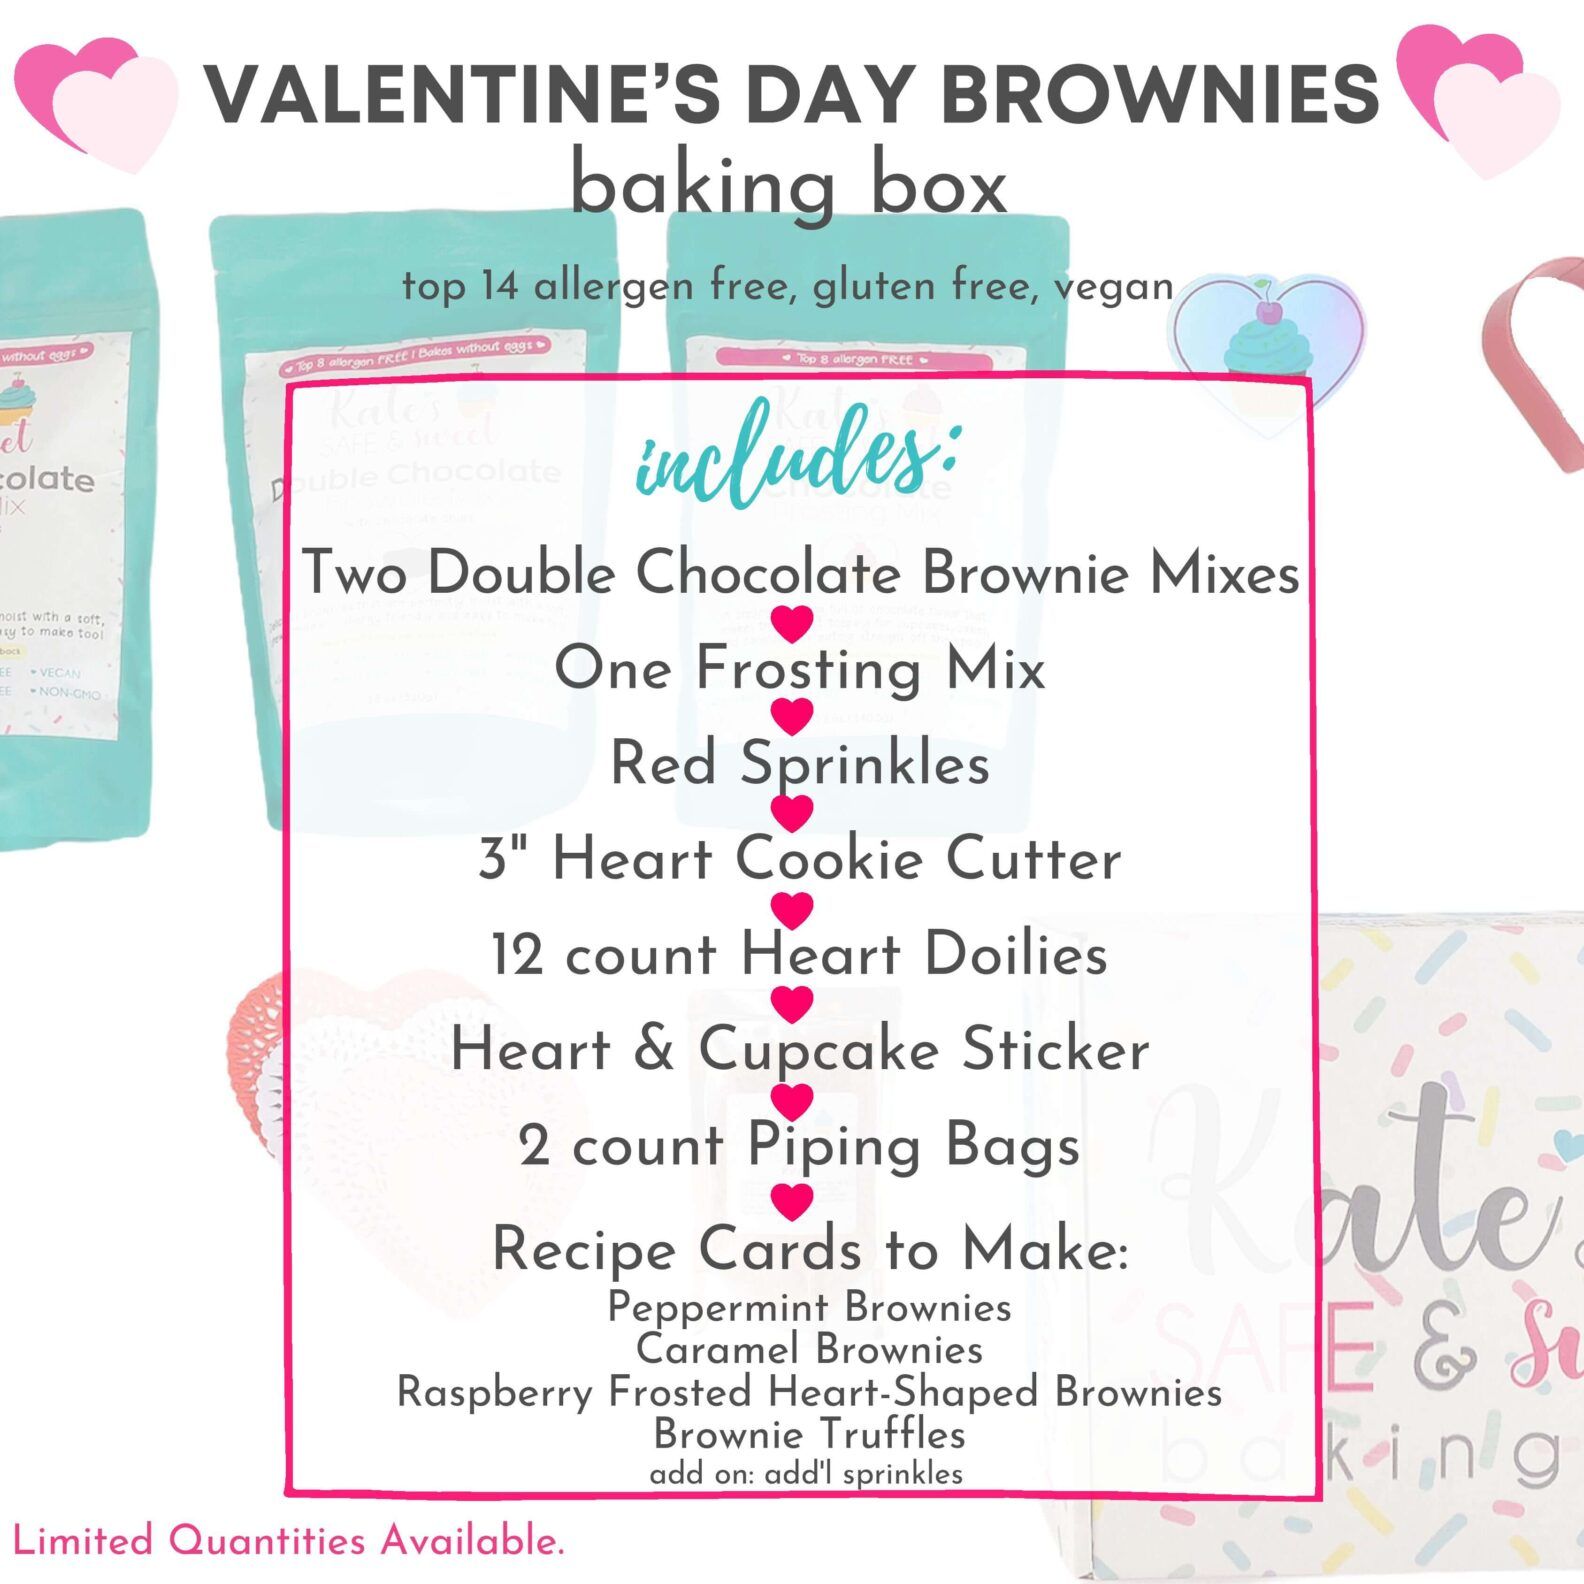 Holiday & Valentines baking boxes Valentine's Brownie Box What's Inside (1)